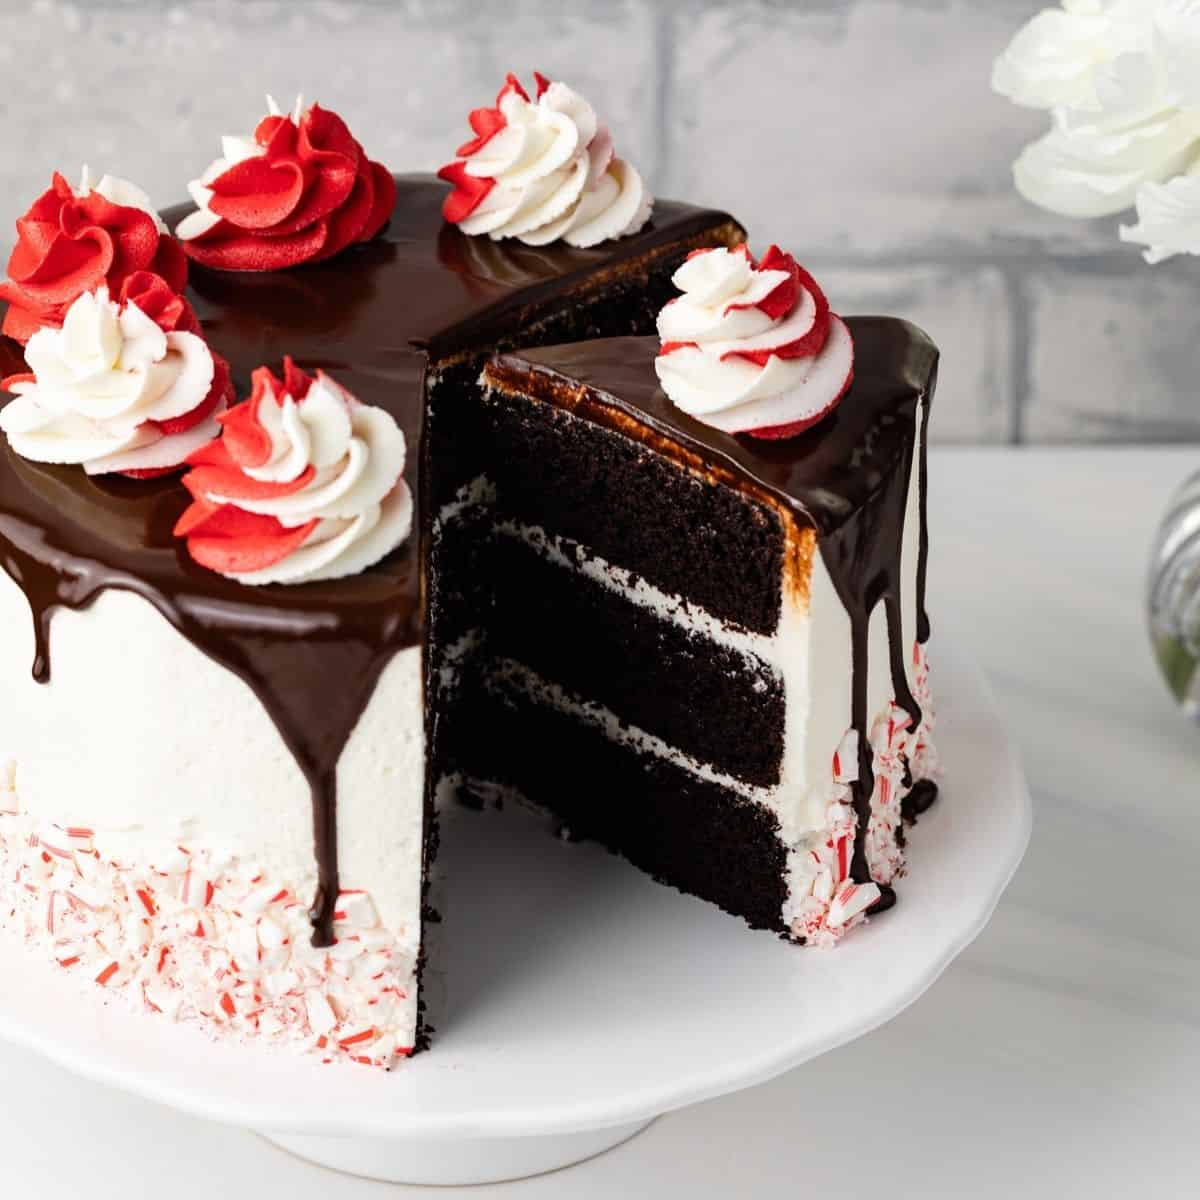 Chocolate cake with white icing decorated with a fudge drip and crushed candy canes sitting on a white cake stand.